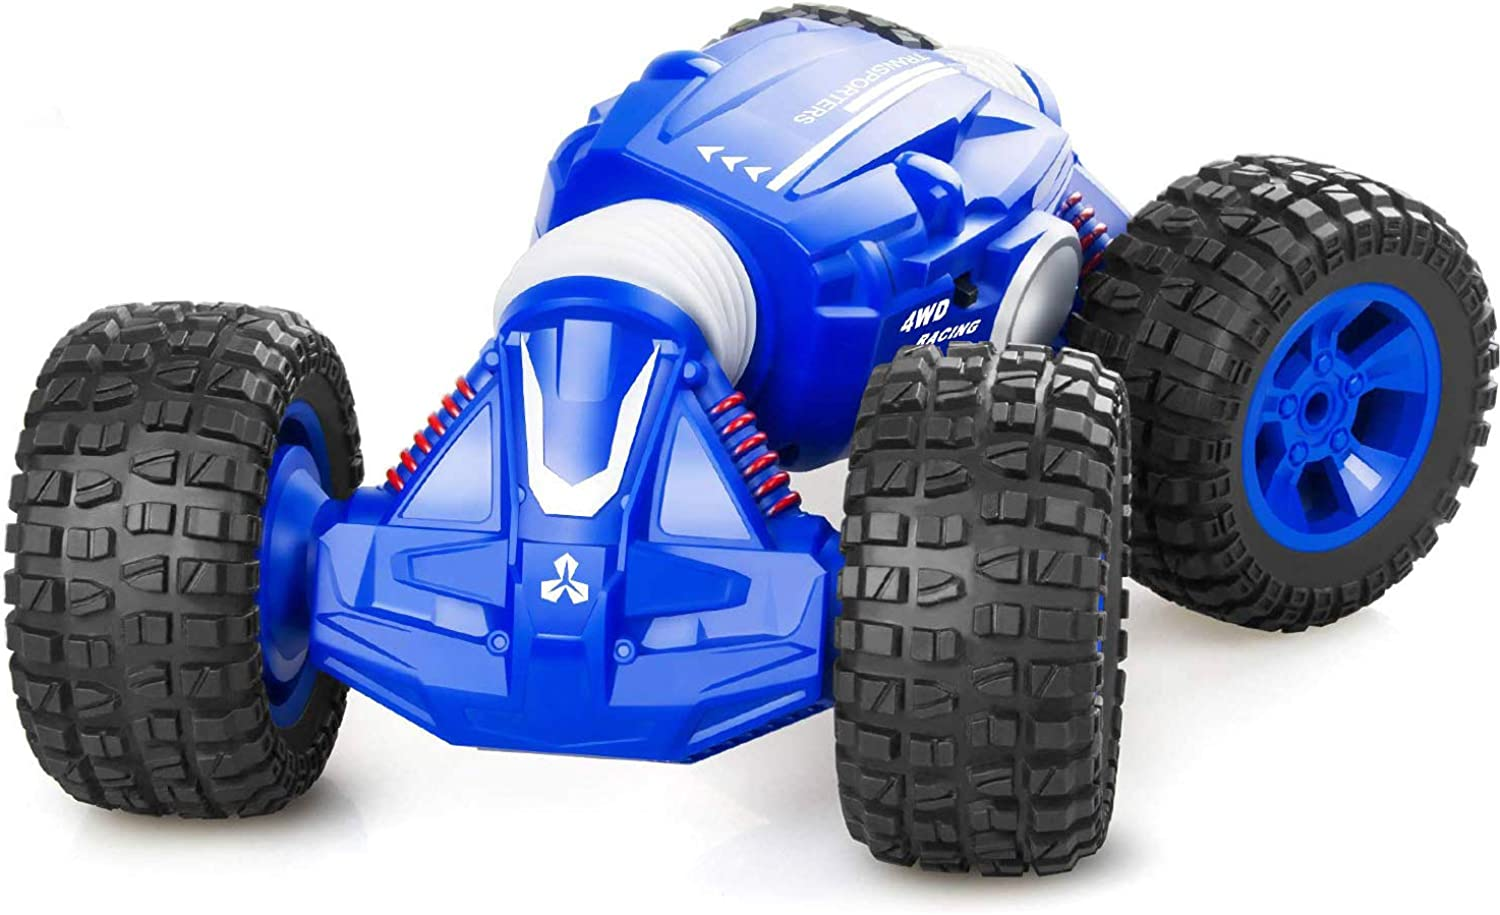 SODIAL Remote Control Car, Rc Cars with 2.4Ghz, 4WD Off Road Monster Truck for Boys & Girls, 1 16 Scale Fast Speed Deformation Stunt Car